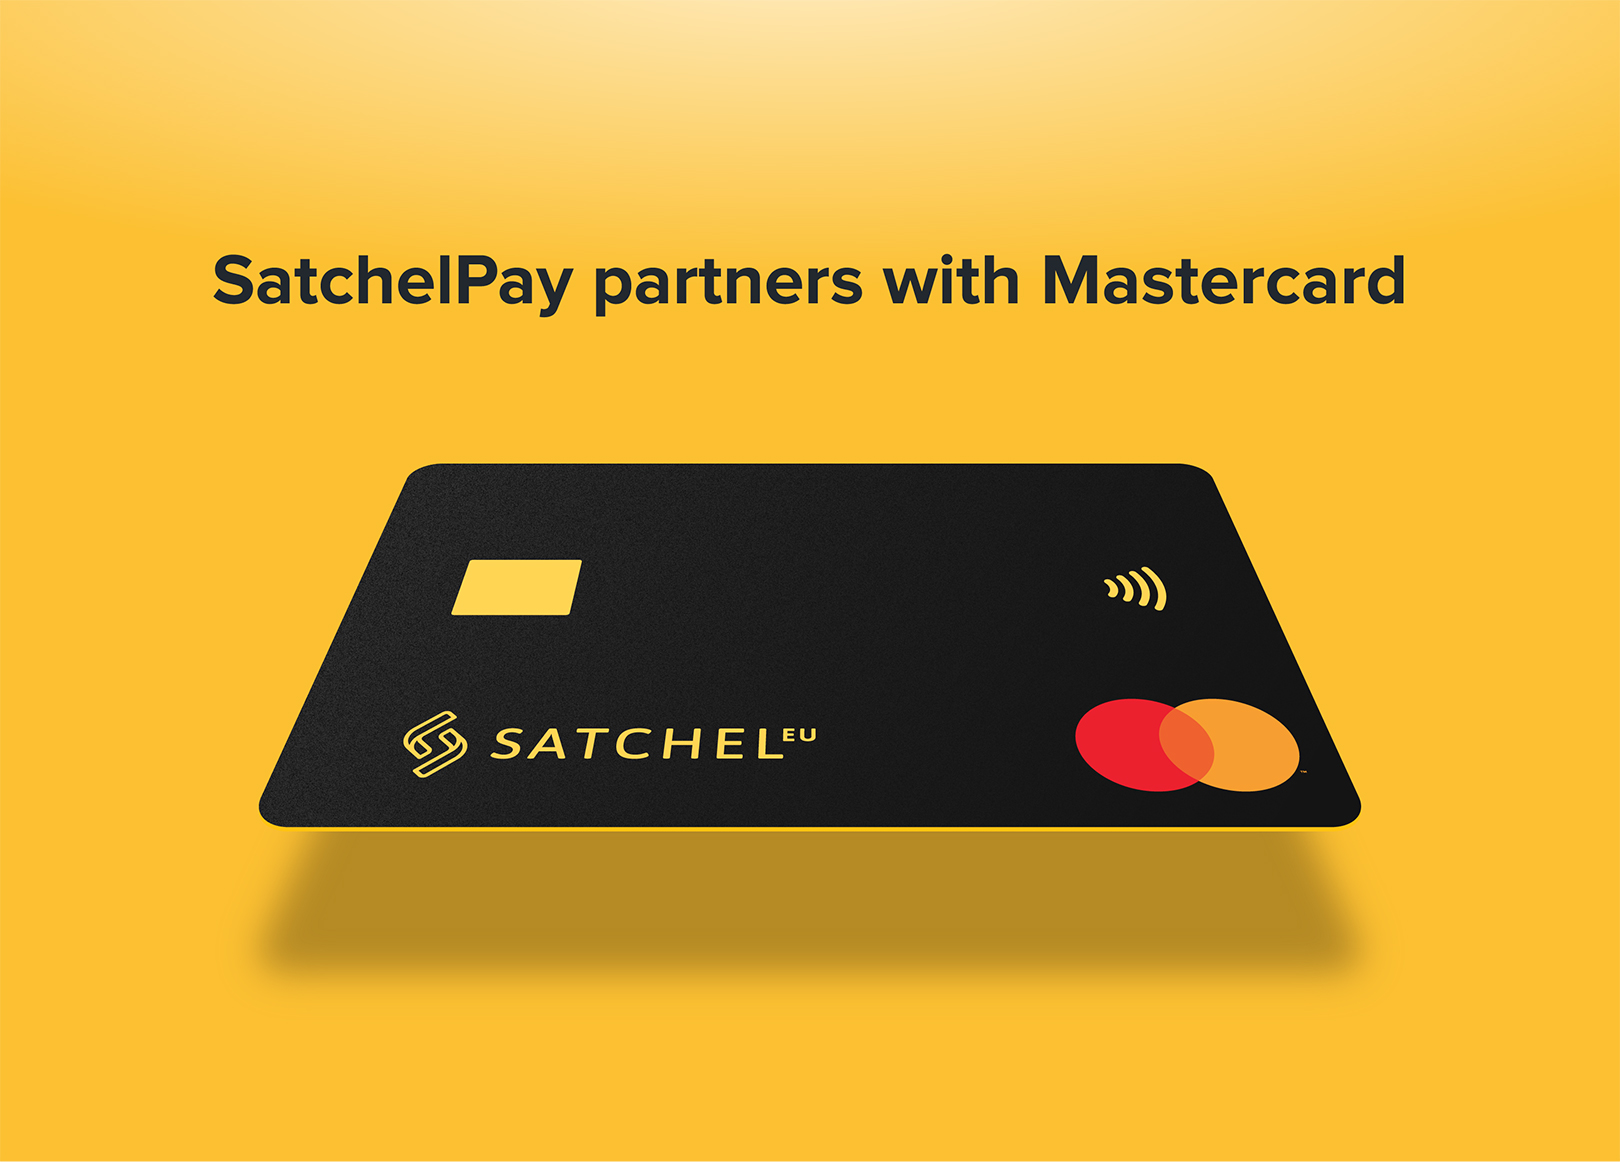 SatchelPay partners with Mastercard: Here to promote our vision and let our clients live their FinTech dream